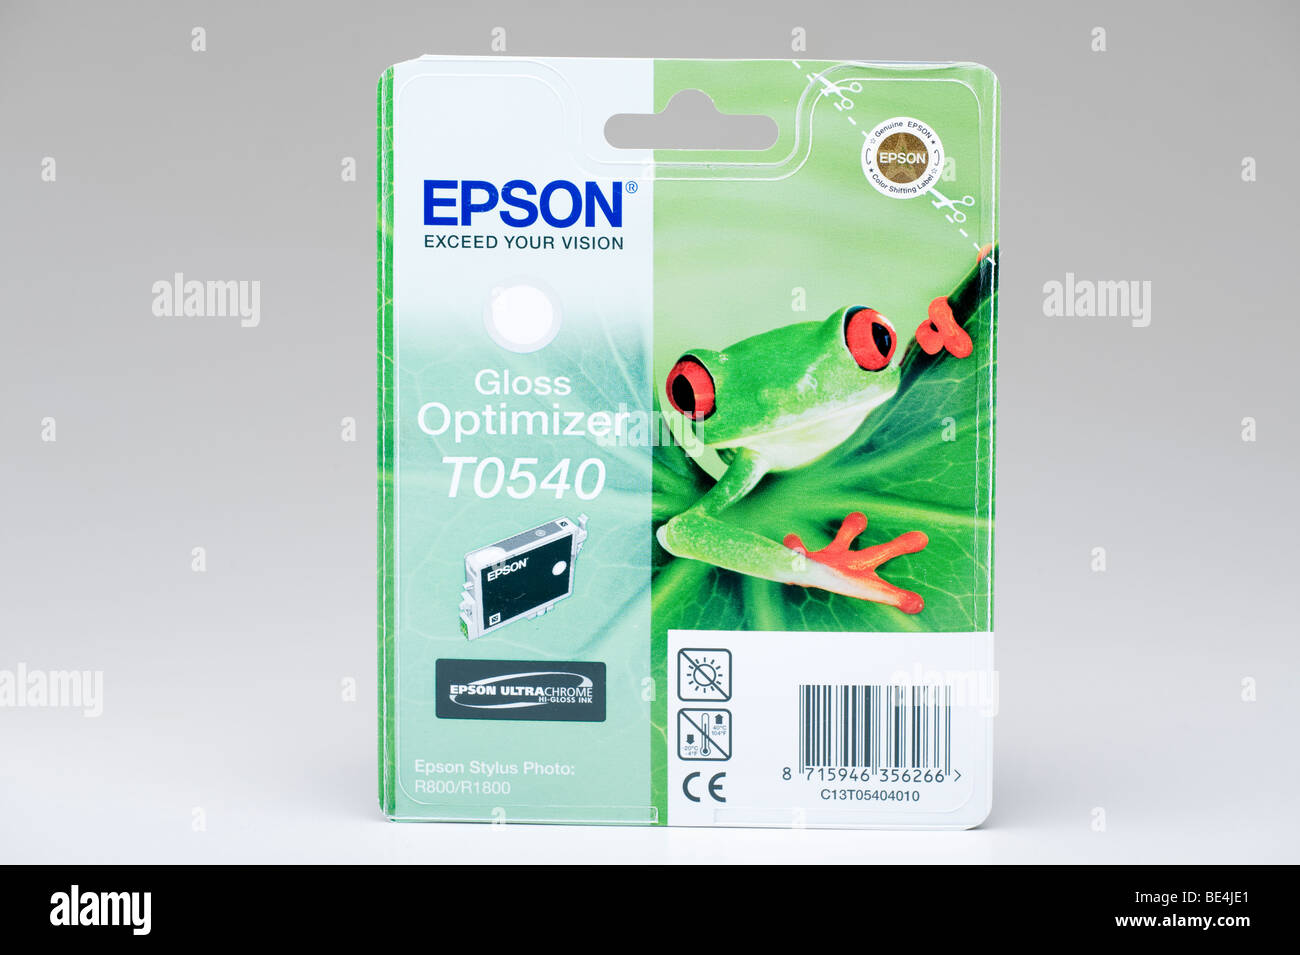 Epson sealed printer color cartridge packet - Stock Image